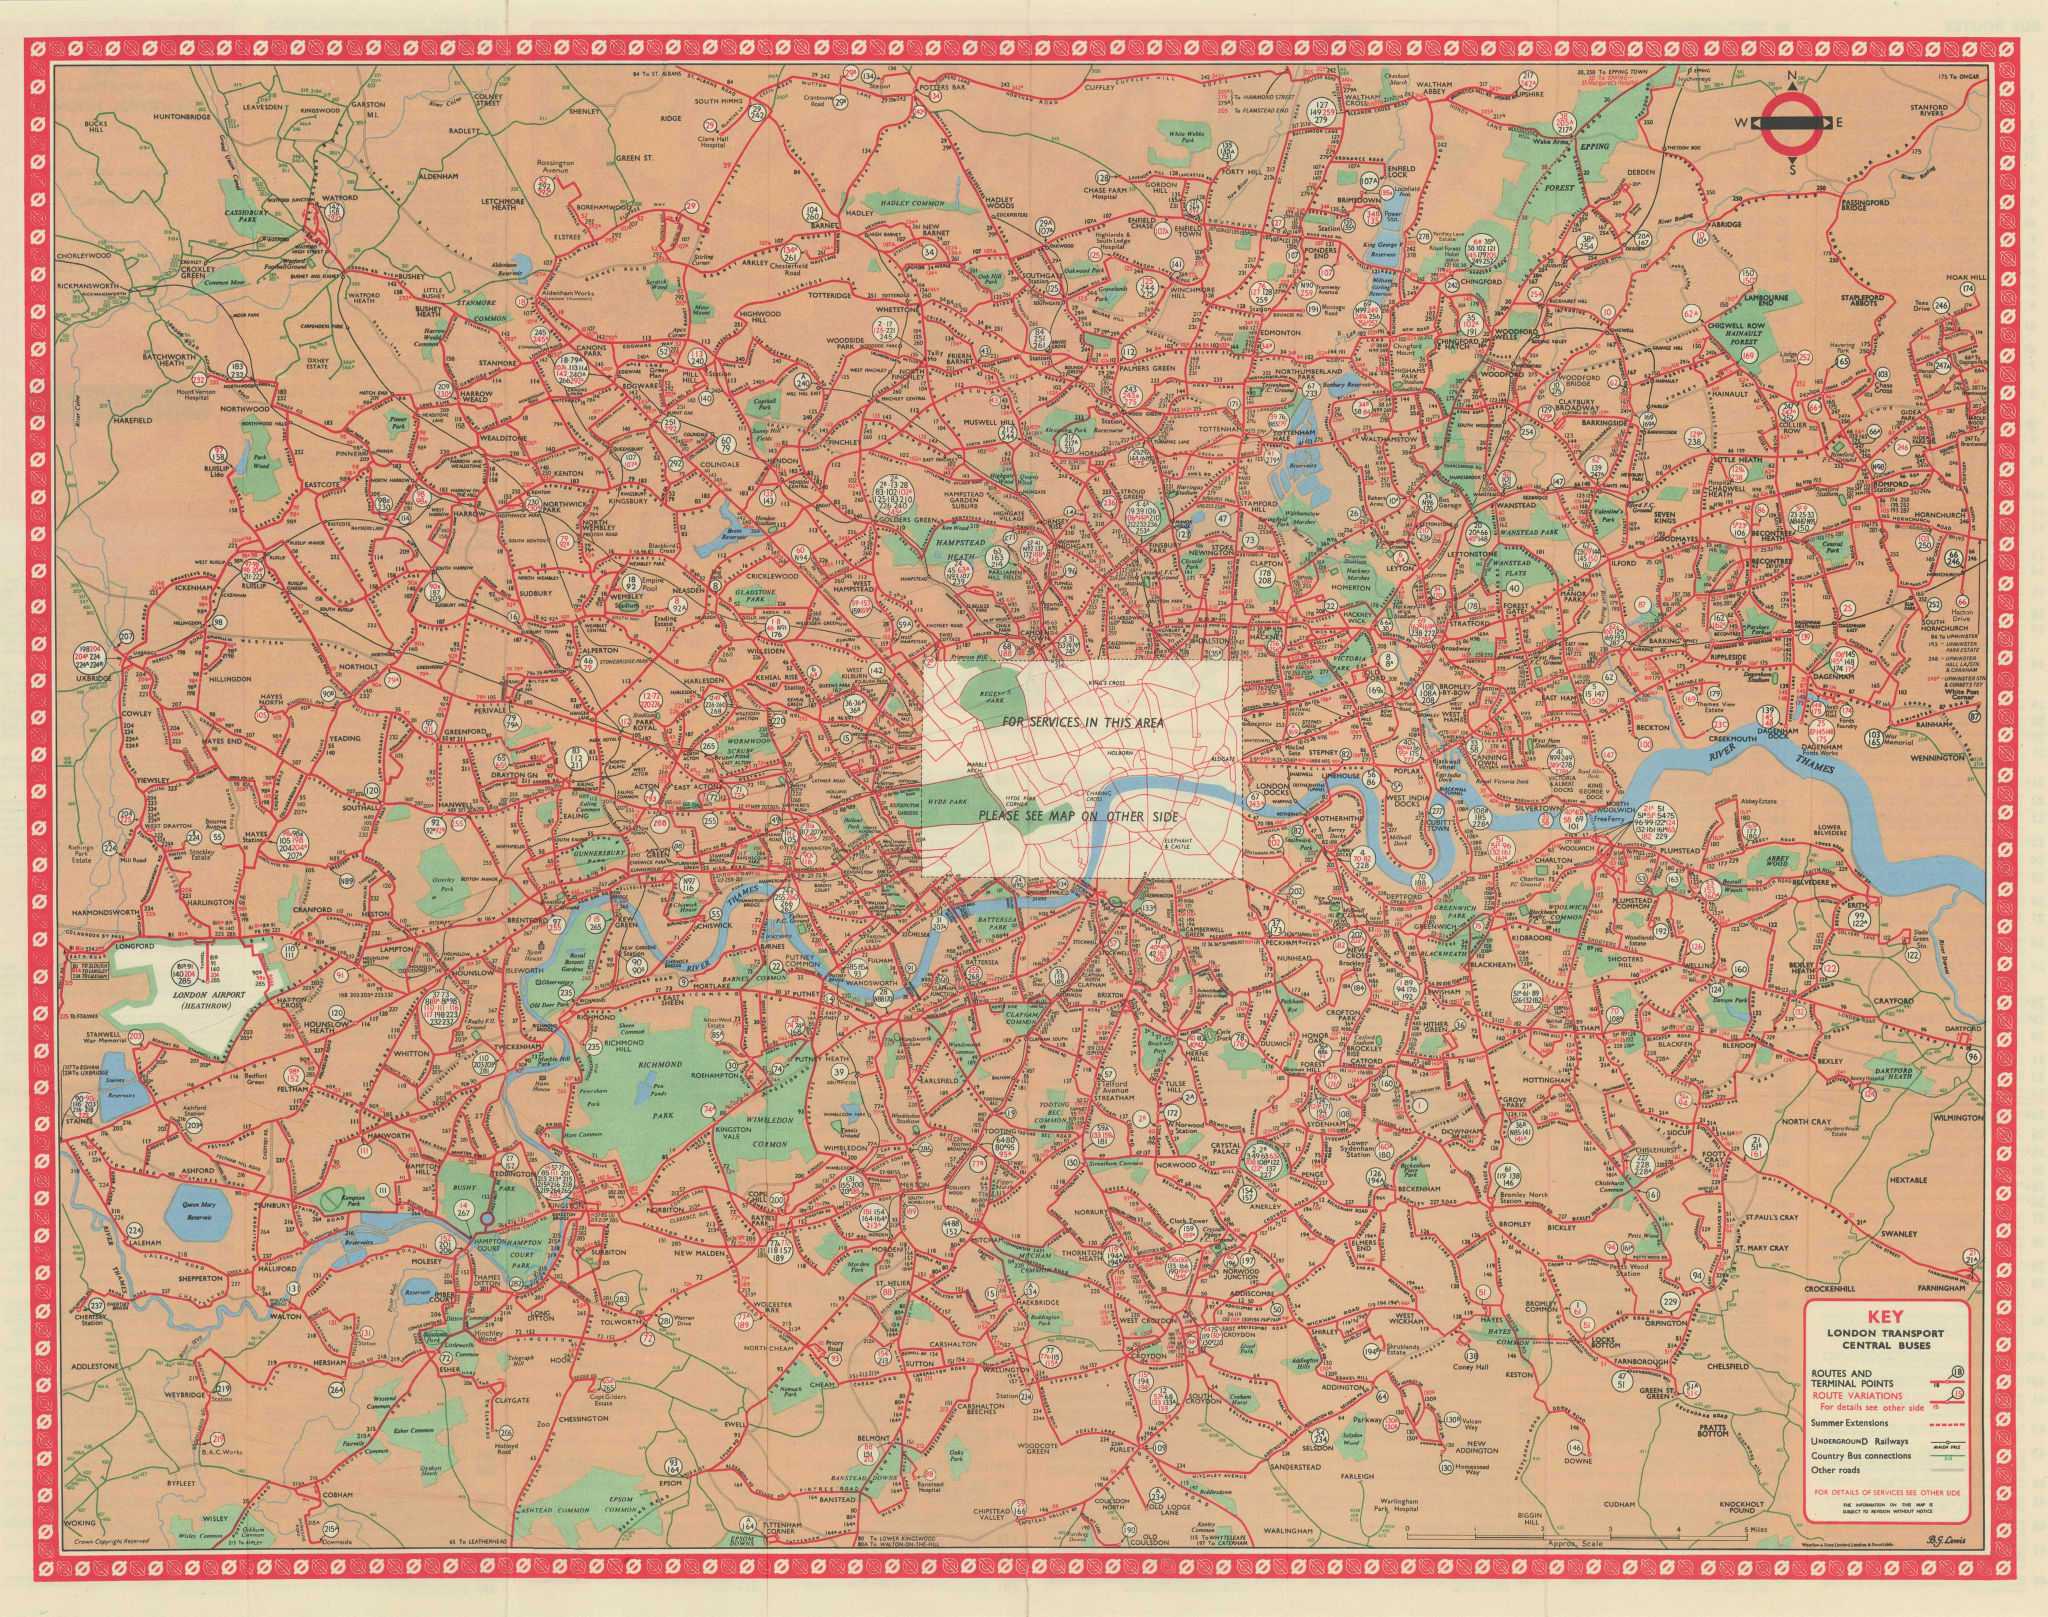 London Transport Central Buses map and list of routes. LEWIS #1 1965 old